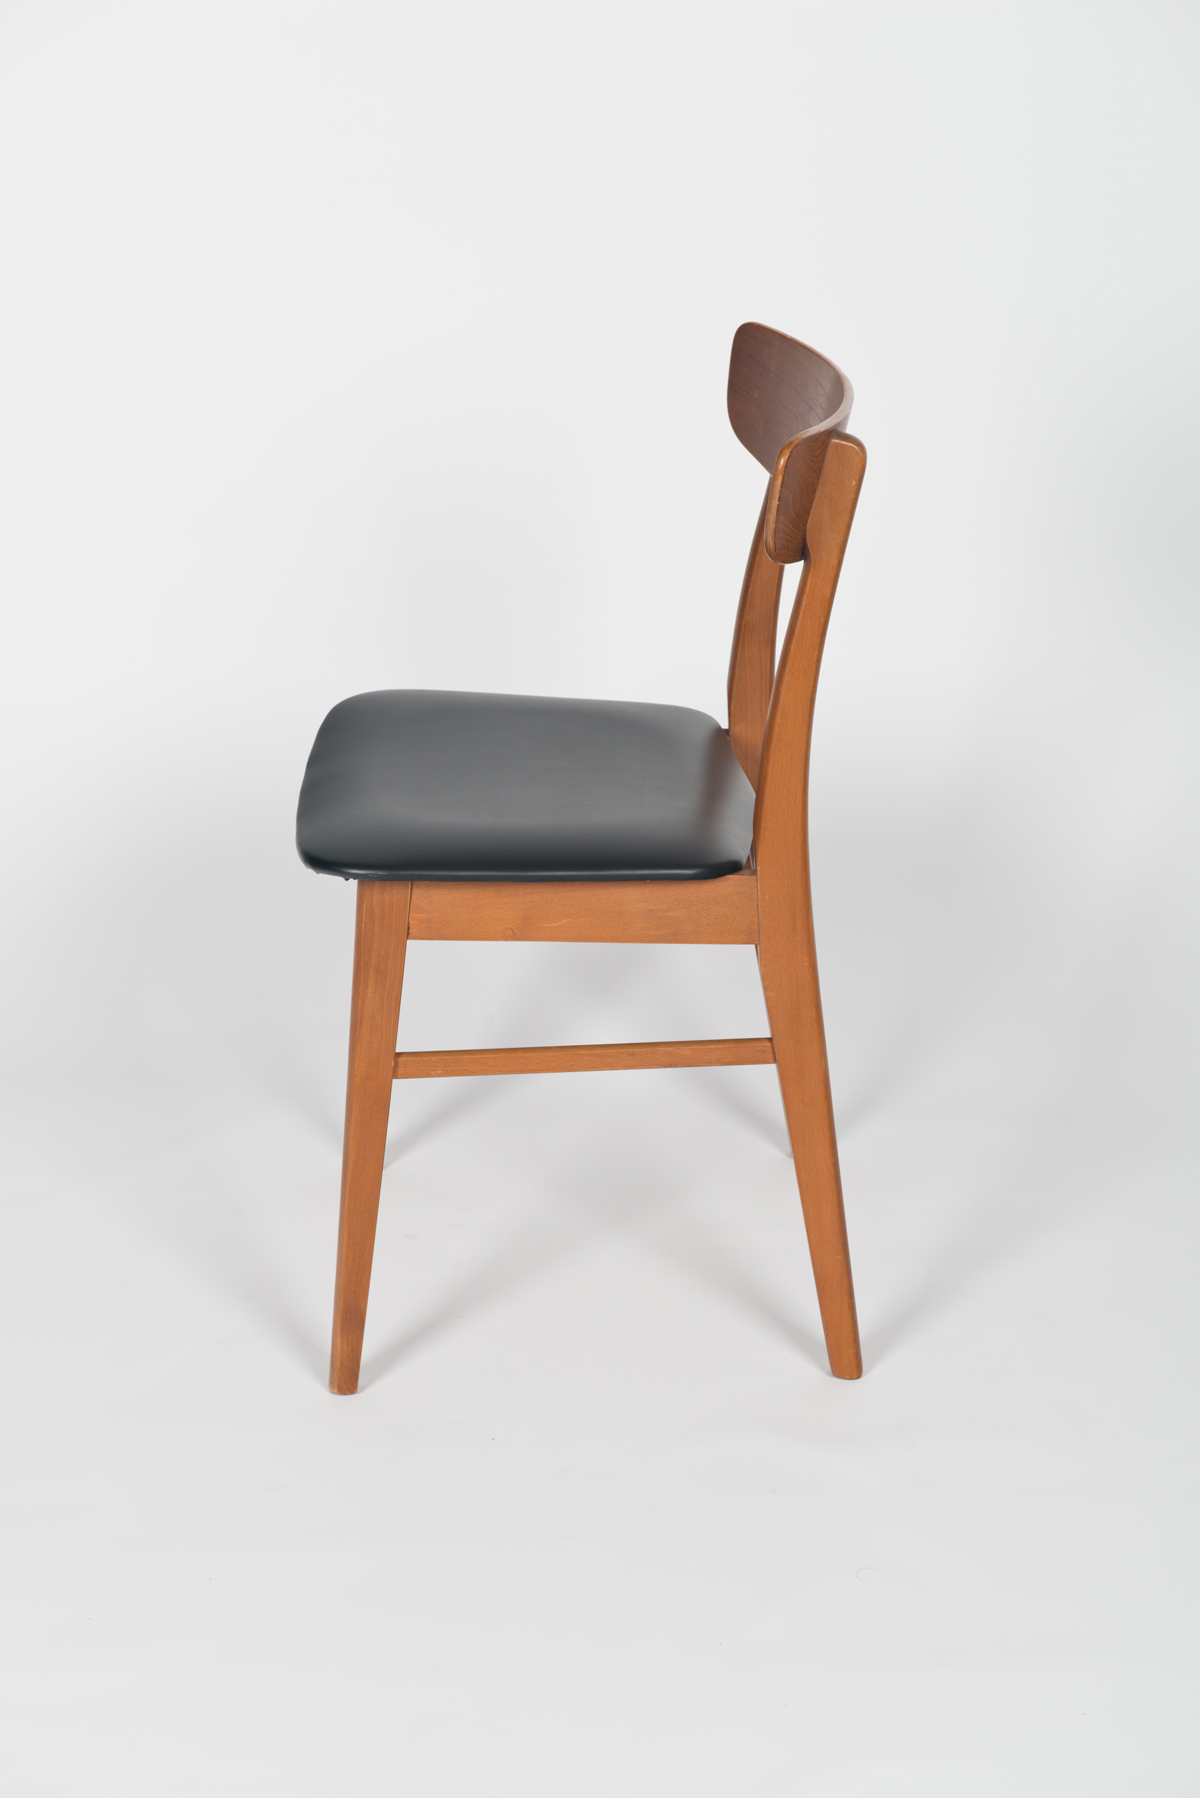 Danish Vintage Dining Chair Made By Findahls Bo Butik